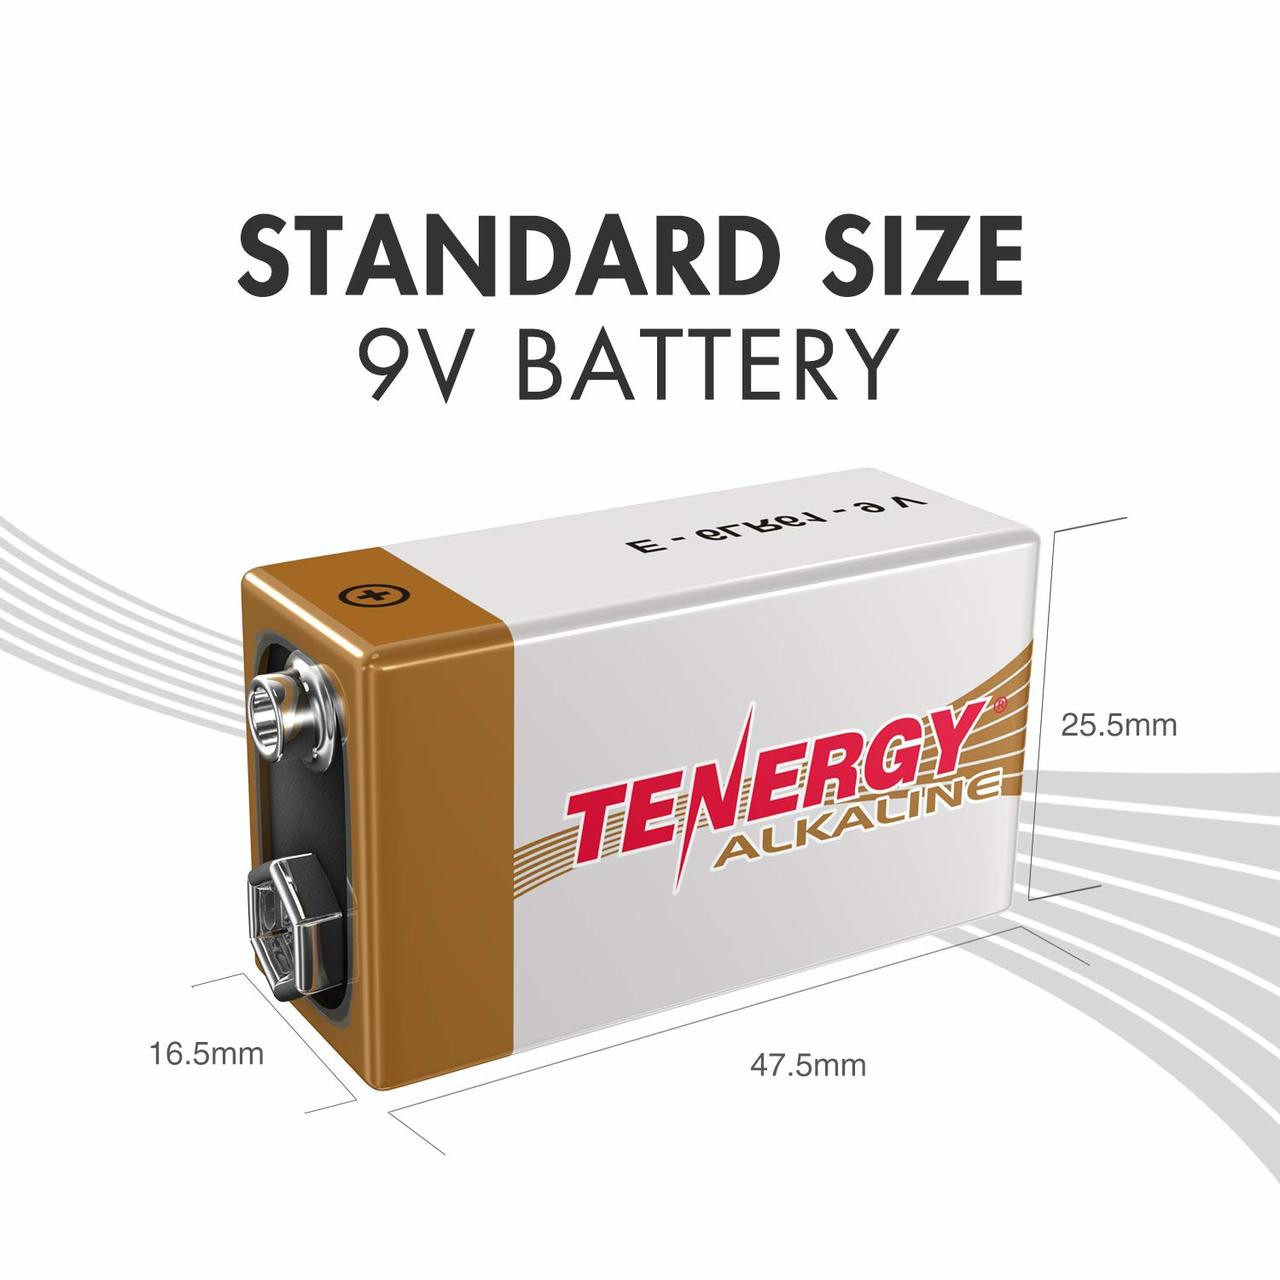 Box: 240pcs Tenergy 9V Size (6LR61) Alkaline Batteries